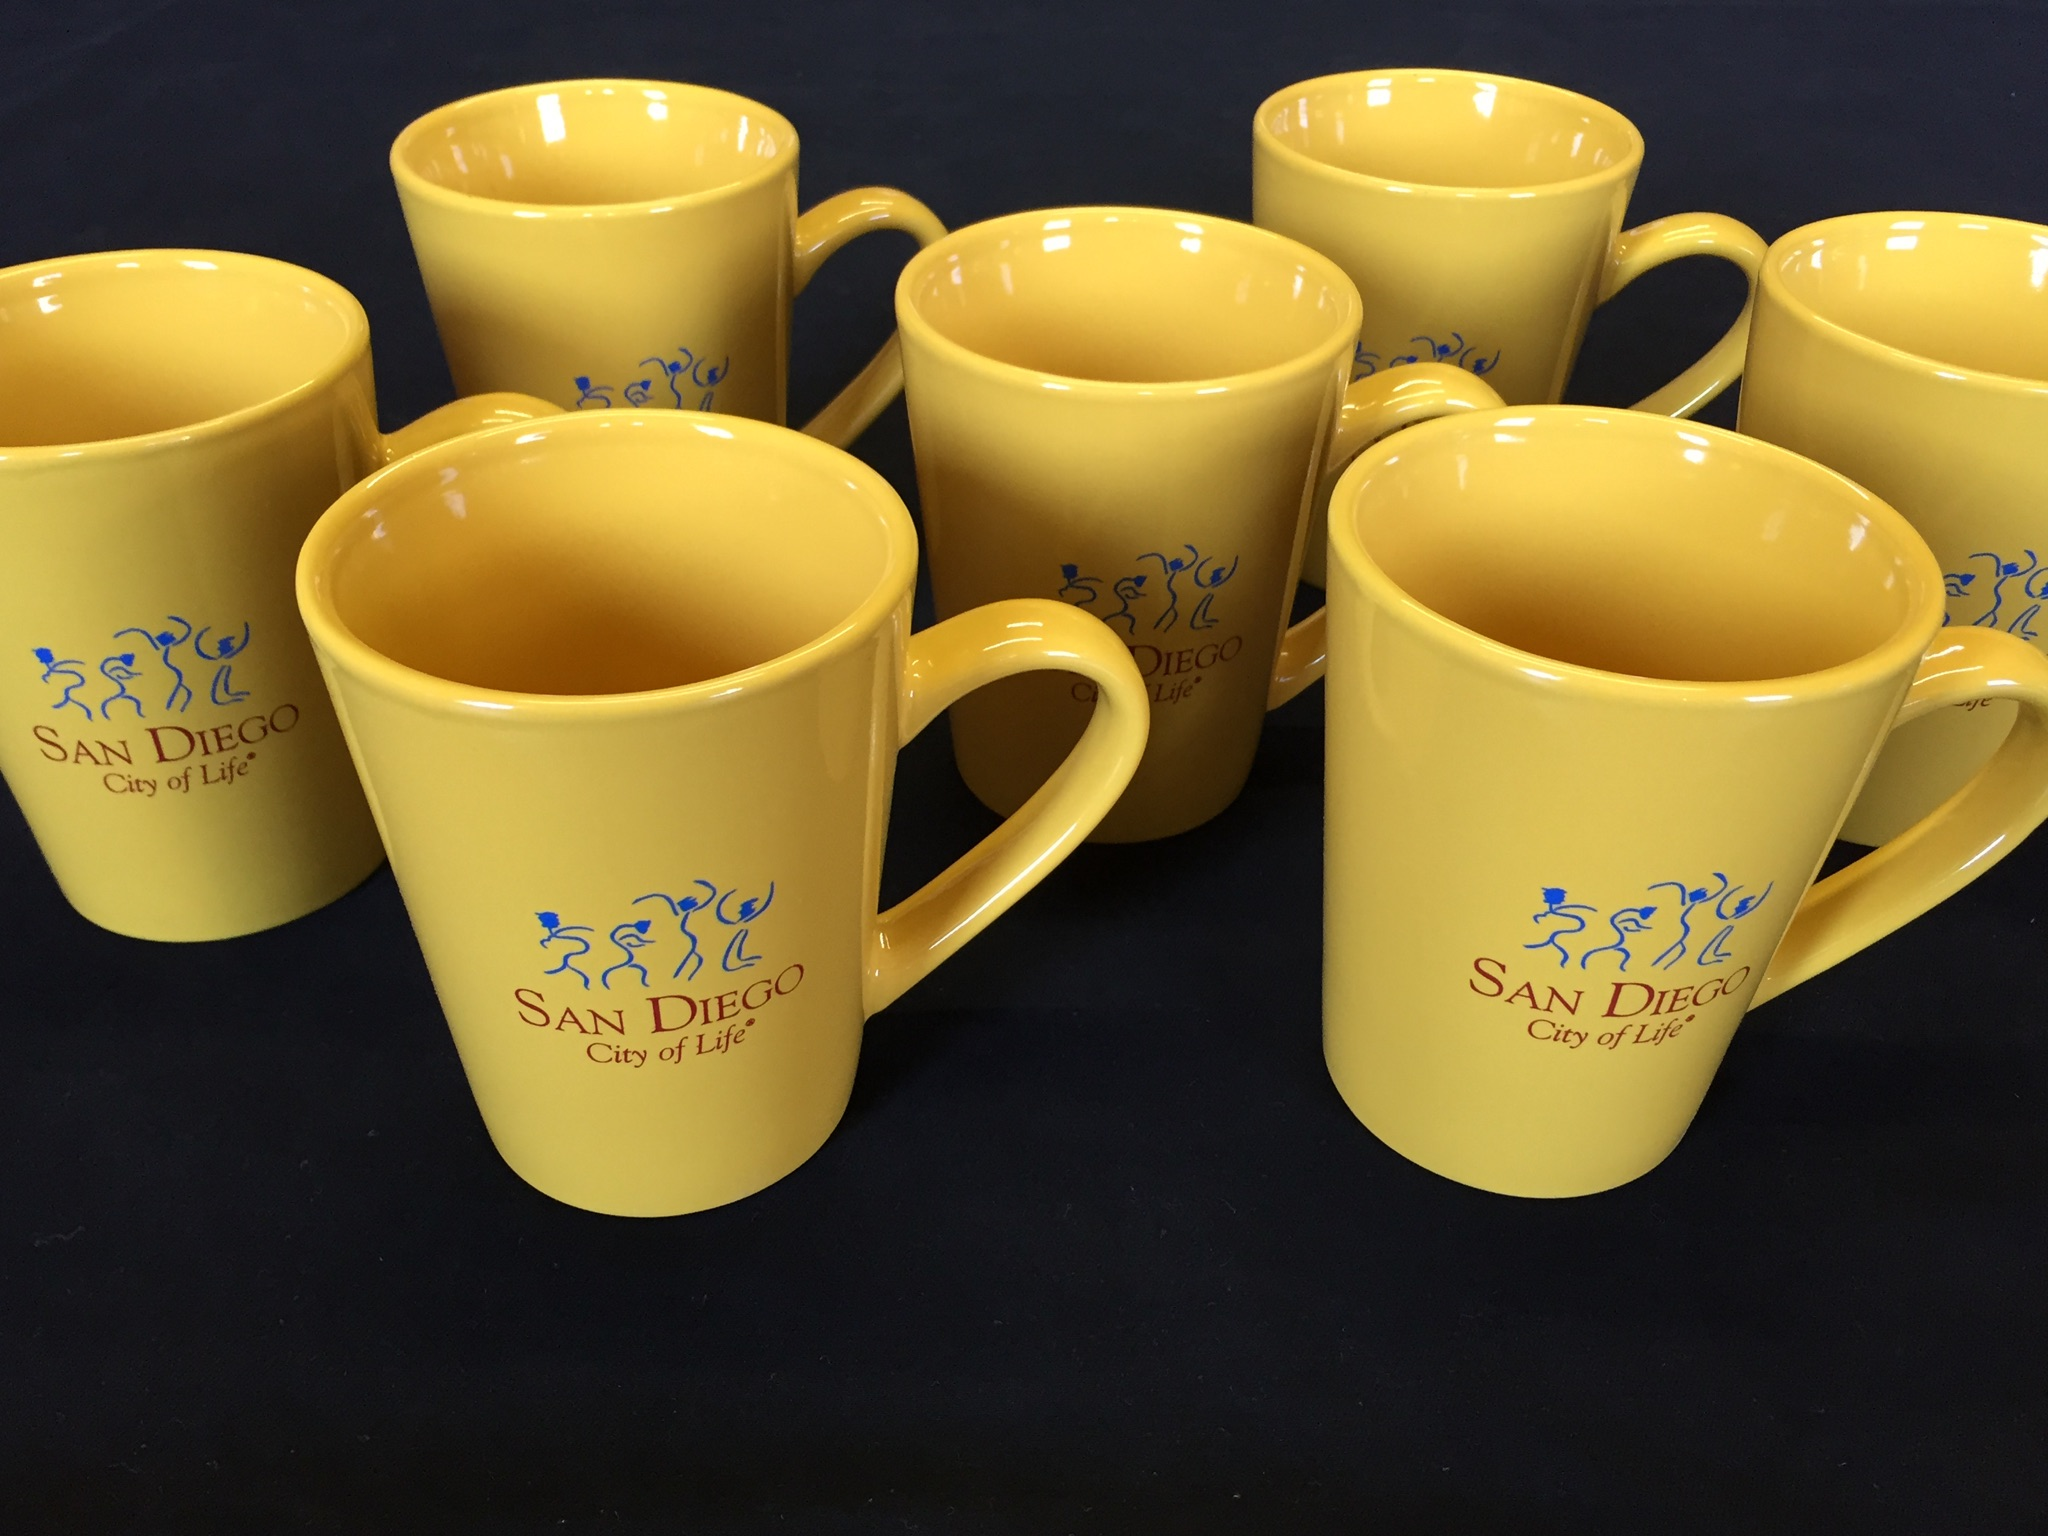 City of Life Mugs